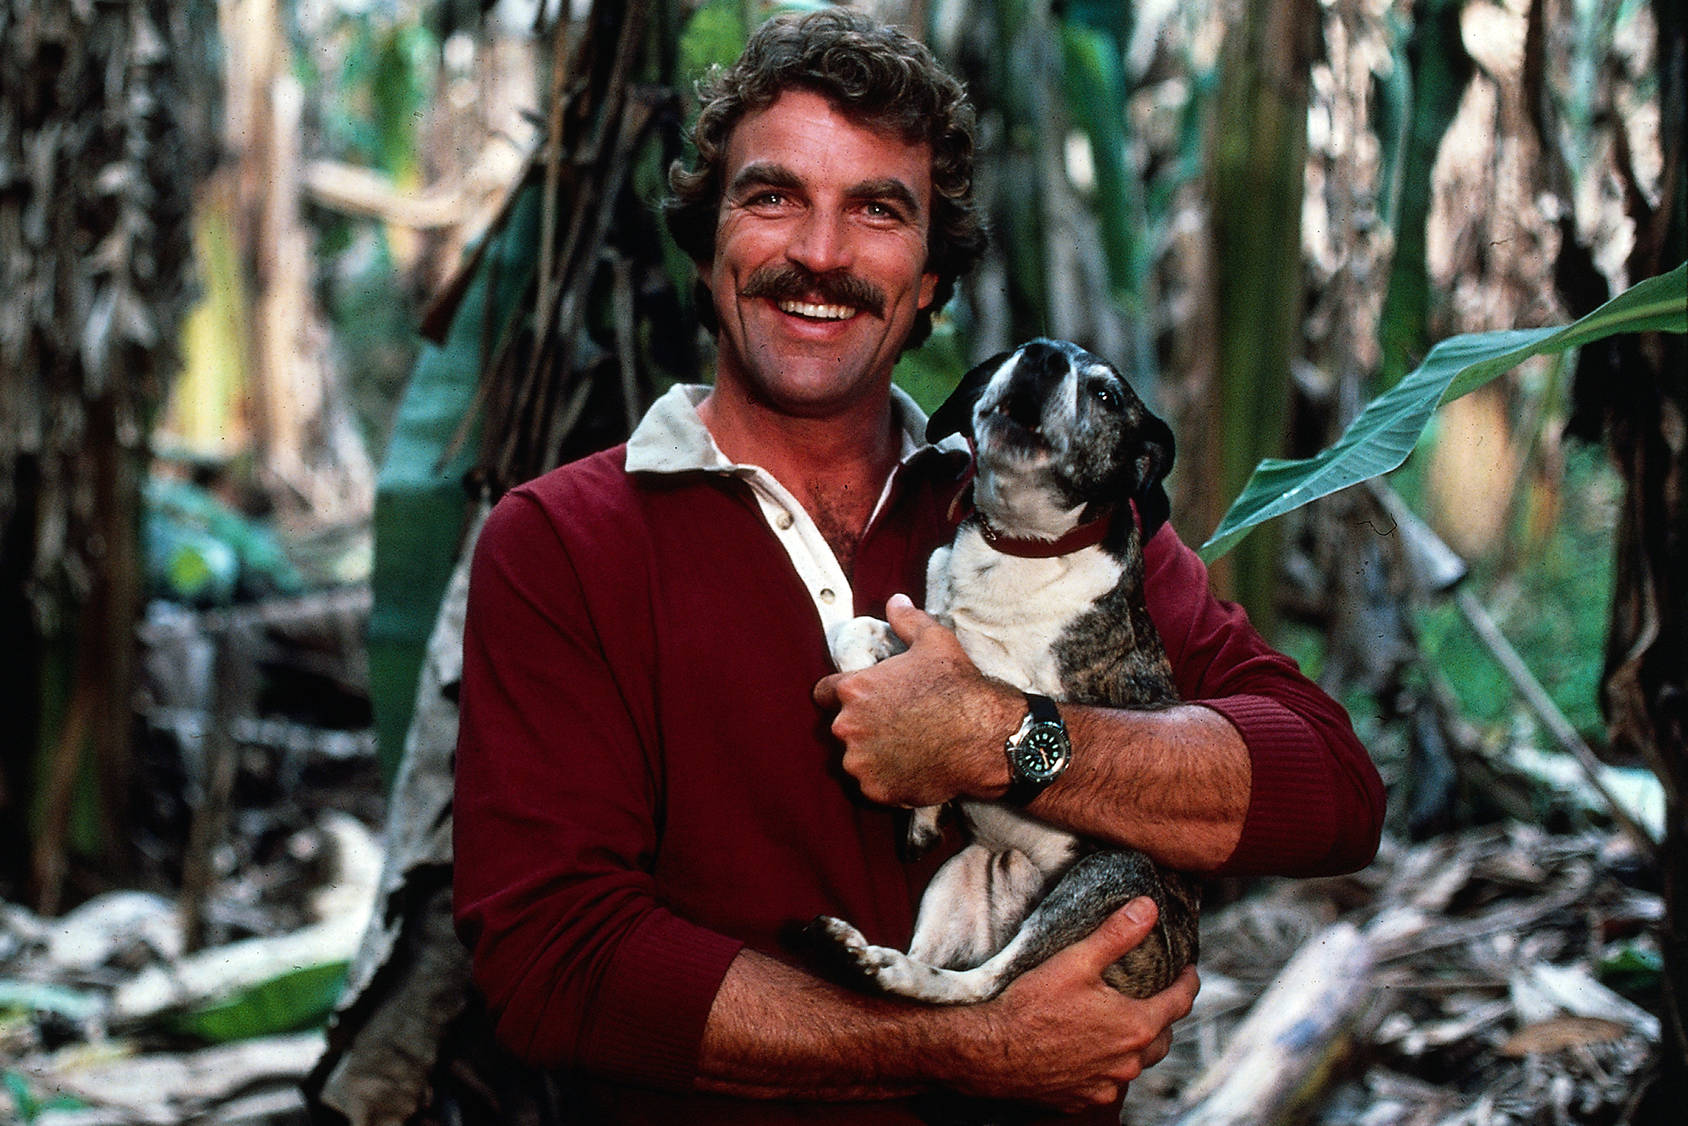 The man with the moustache – Magnum P.I. celebrates his 35th anniversary of the show's premiere, Getty Images.